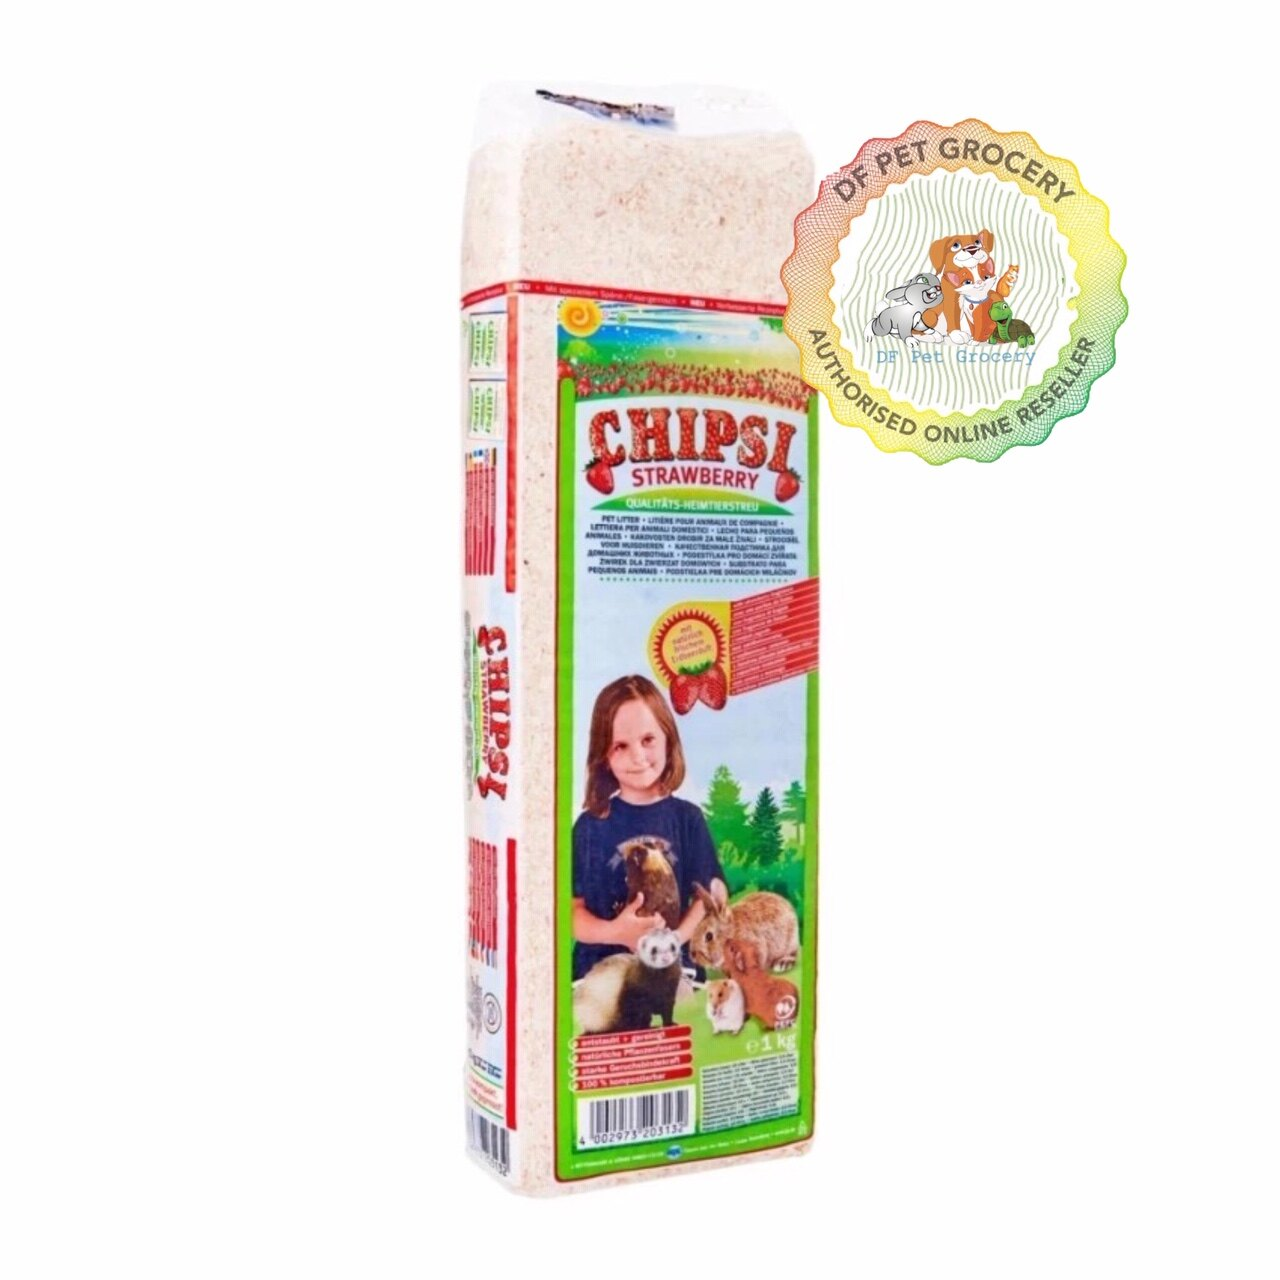 CHIPSI STRAWBERRY HAMSTER BEDDING 1KG - 15L 1000S